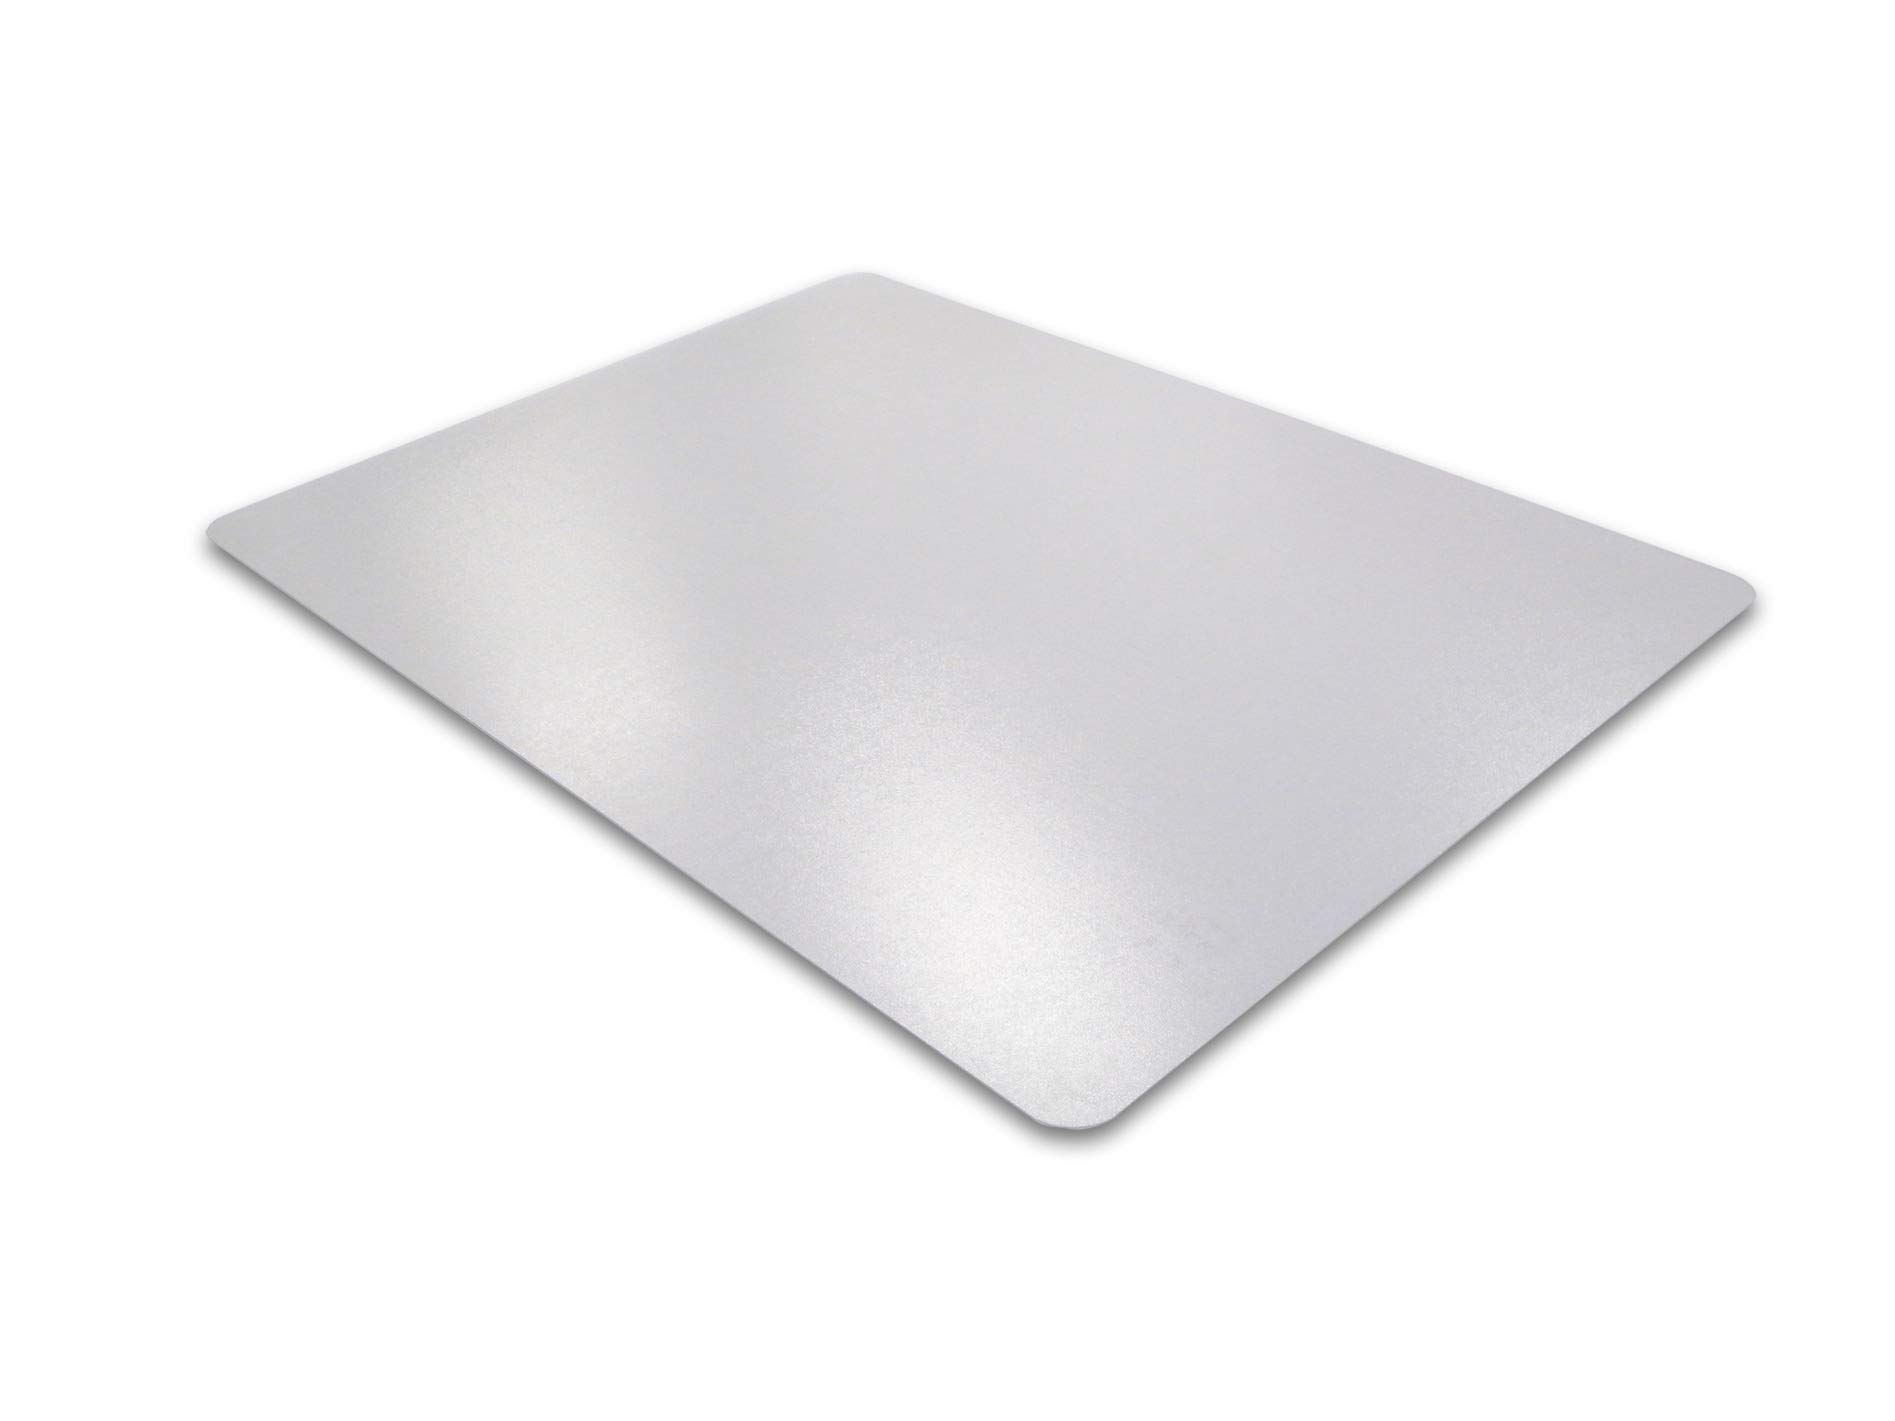 Cleartex Ultimat Chair Mat, Clear Polycarbonate, for Hard Floors, Rectangular, 48'' x 53'' (FR1213419ER)